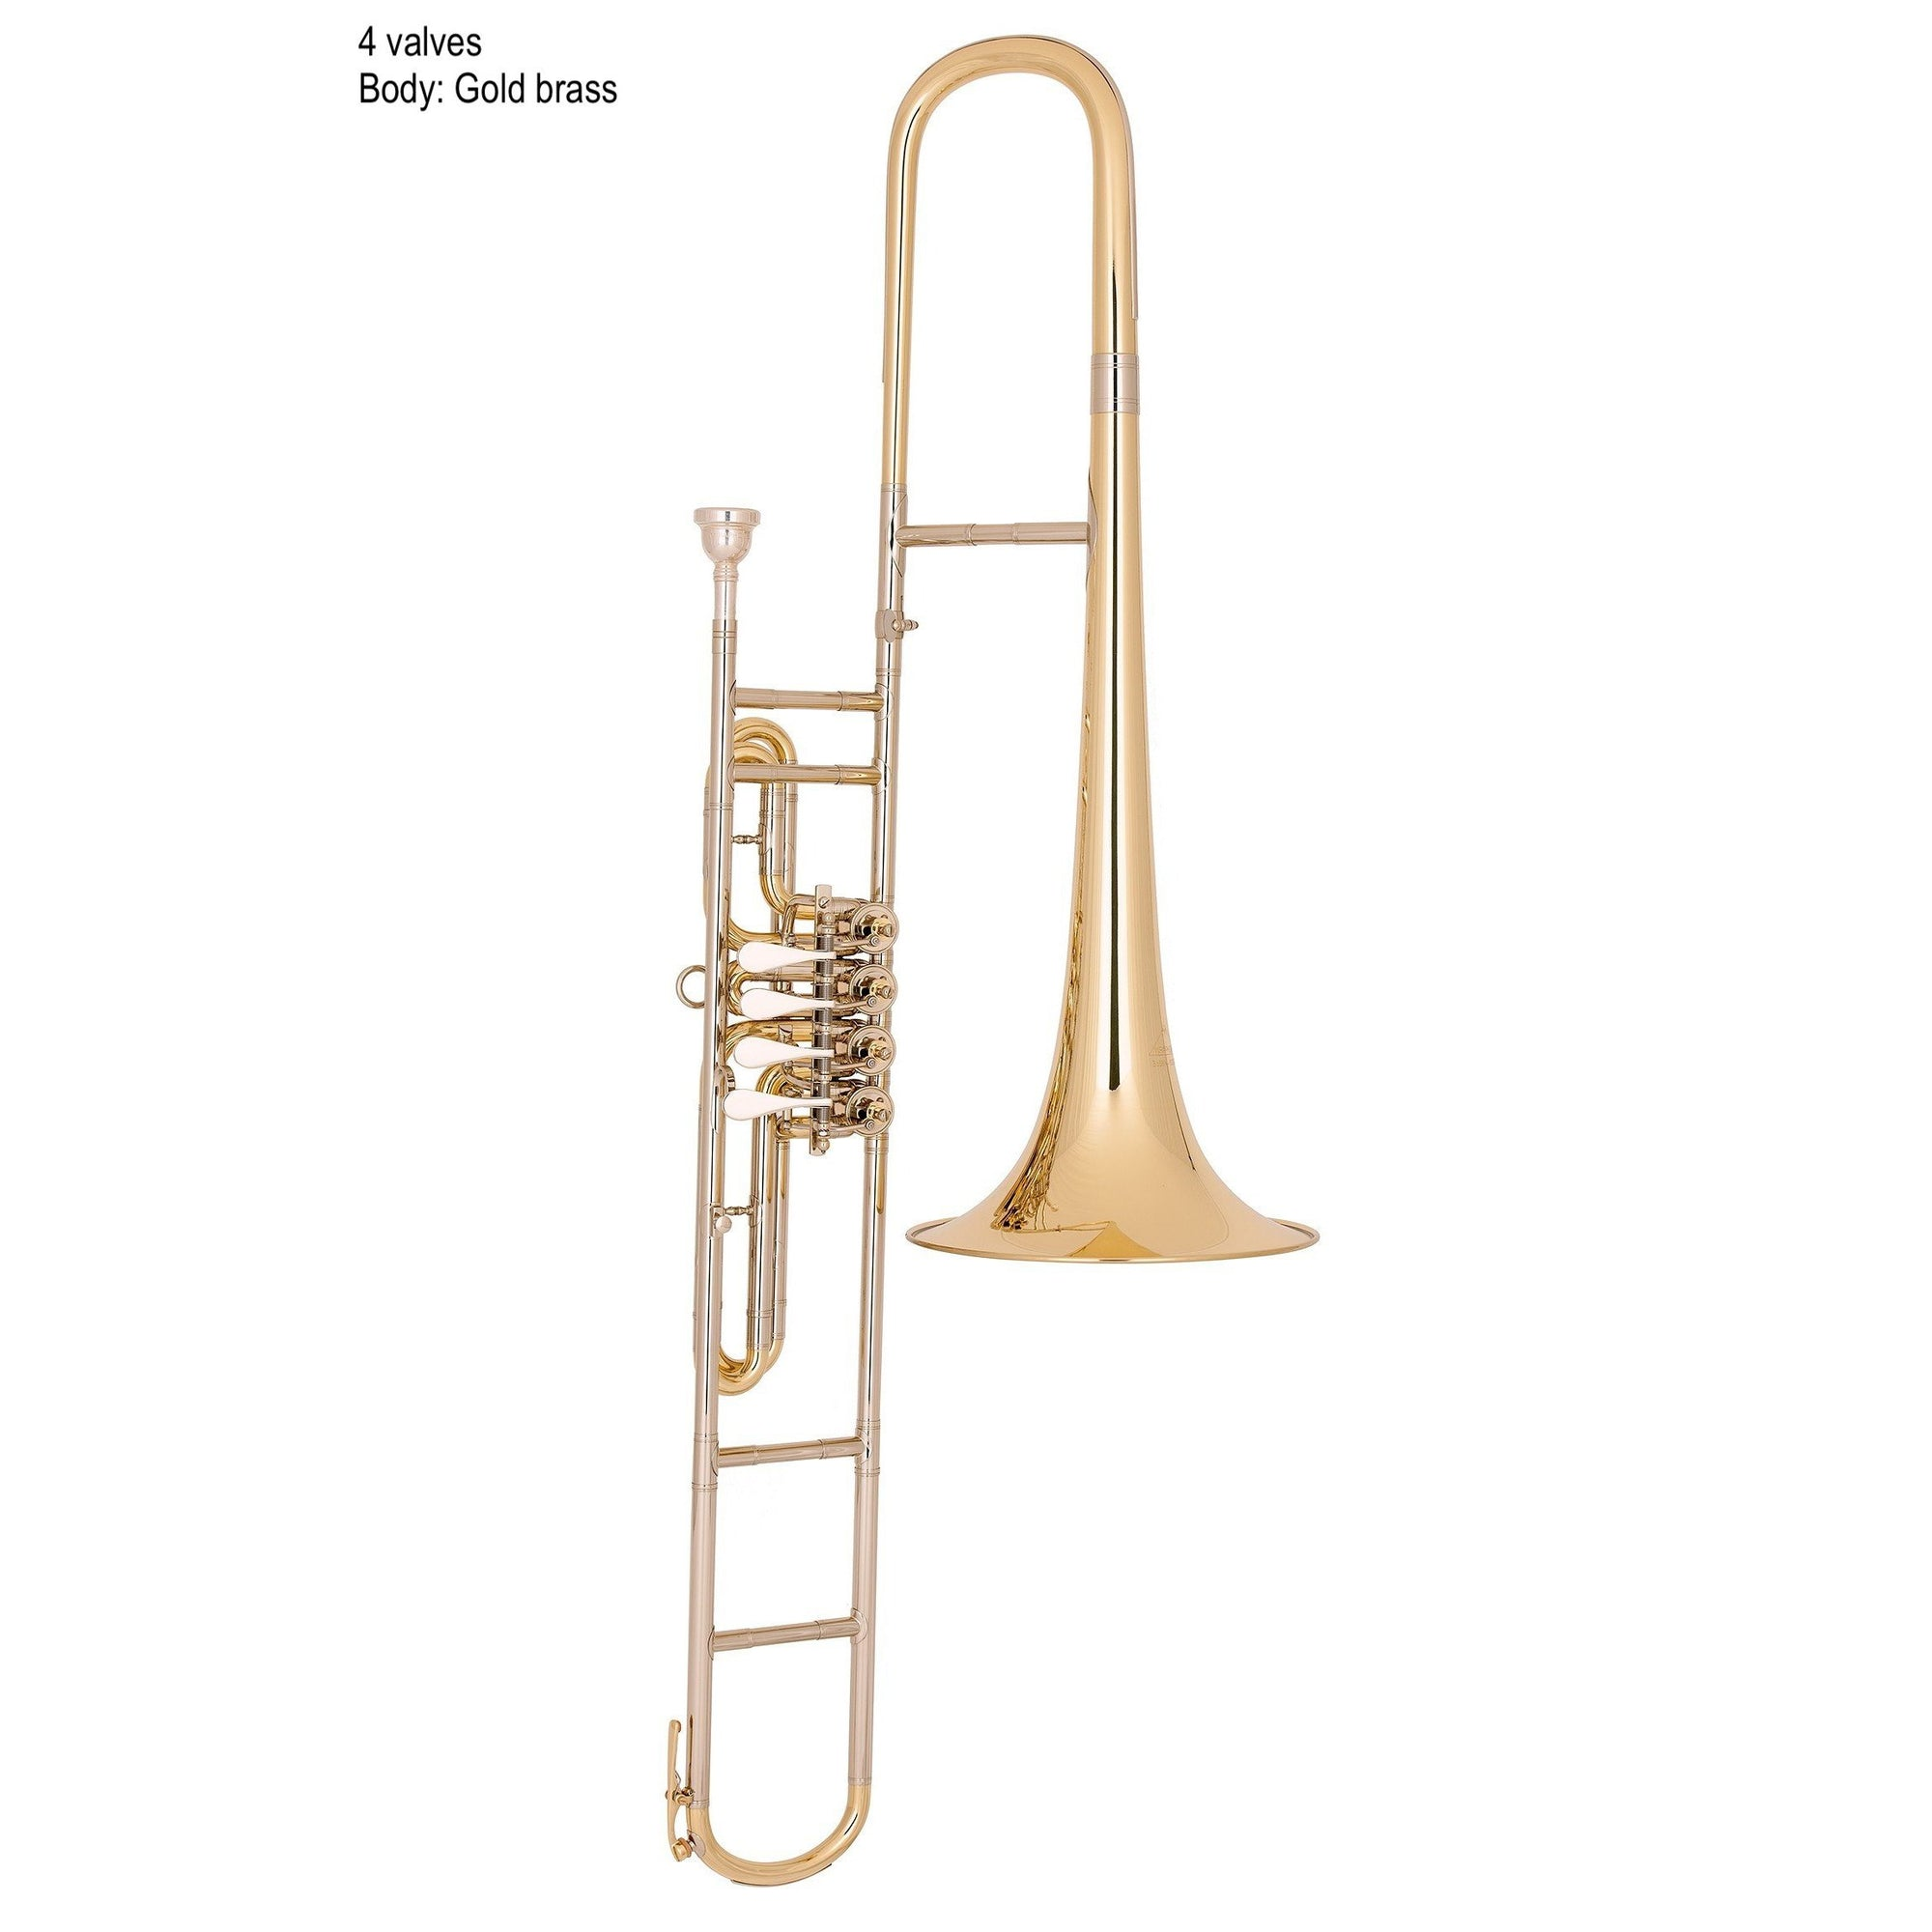 Miraphone - Model 58W Bb Valve Trombones-Trombone-Miraphone-Music Elements